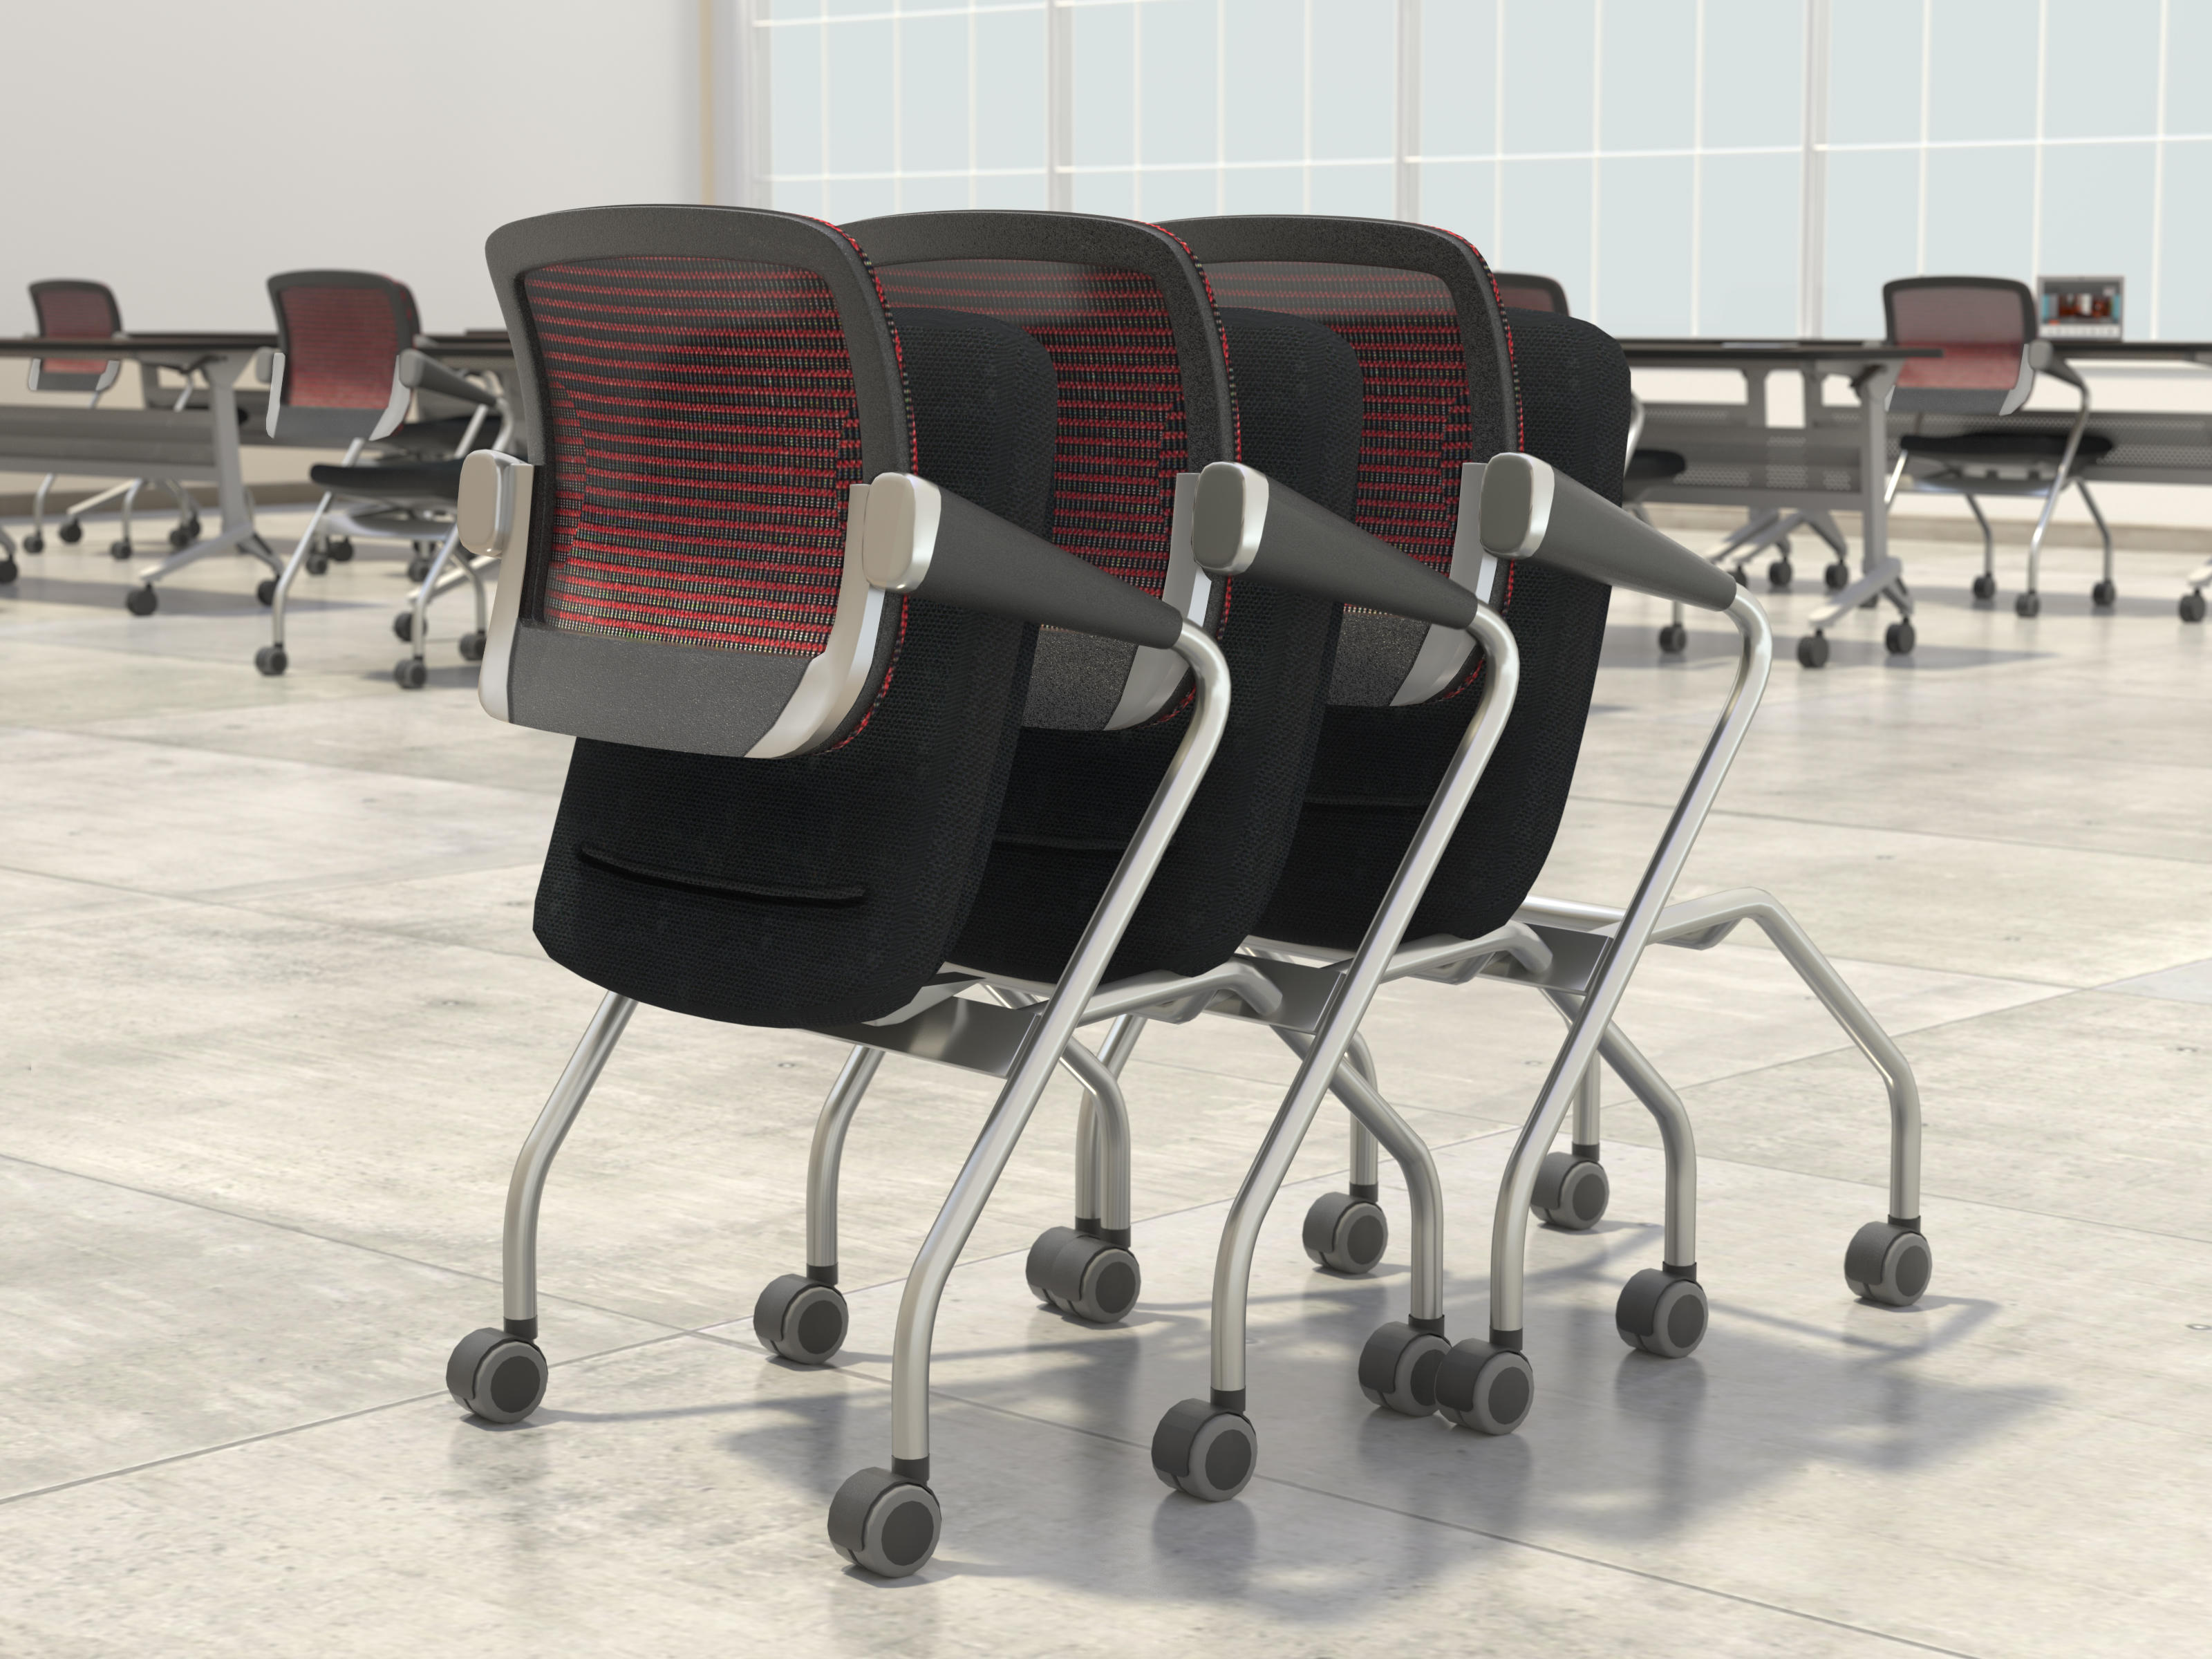 Office Chairs Unlimited image 2